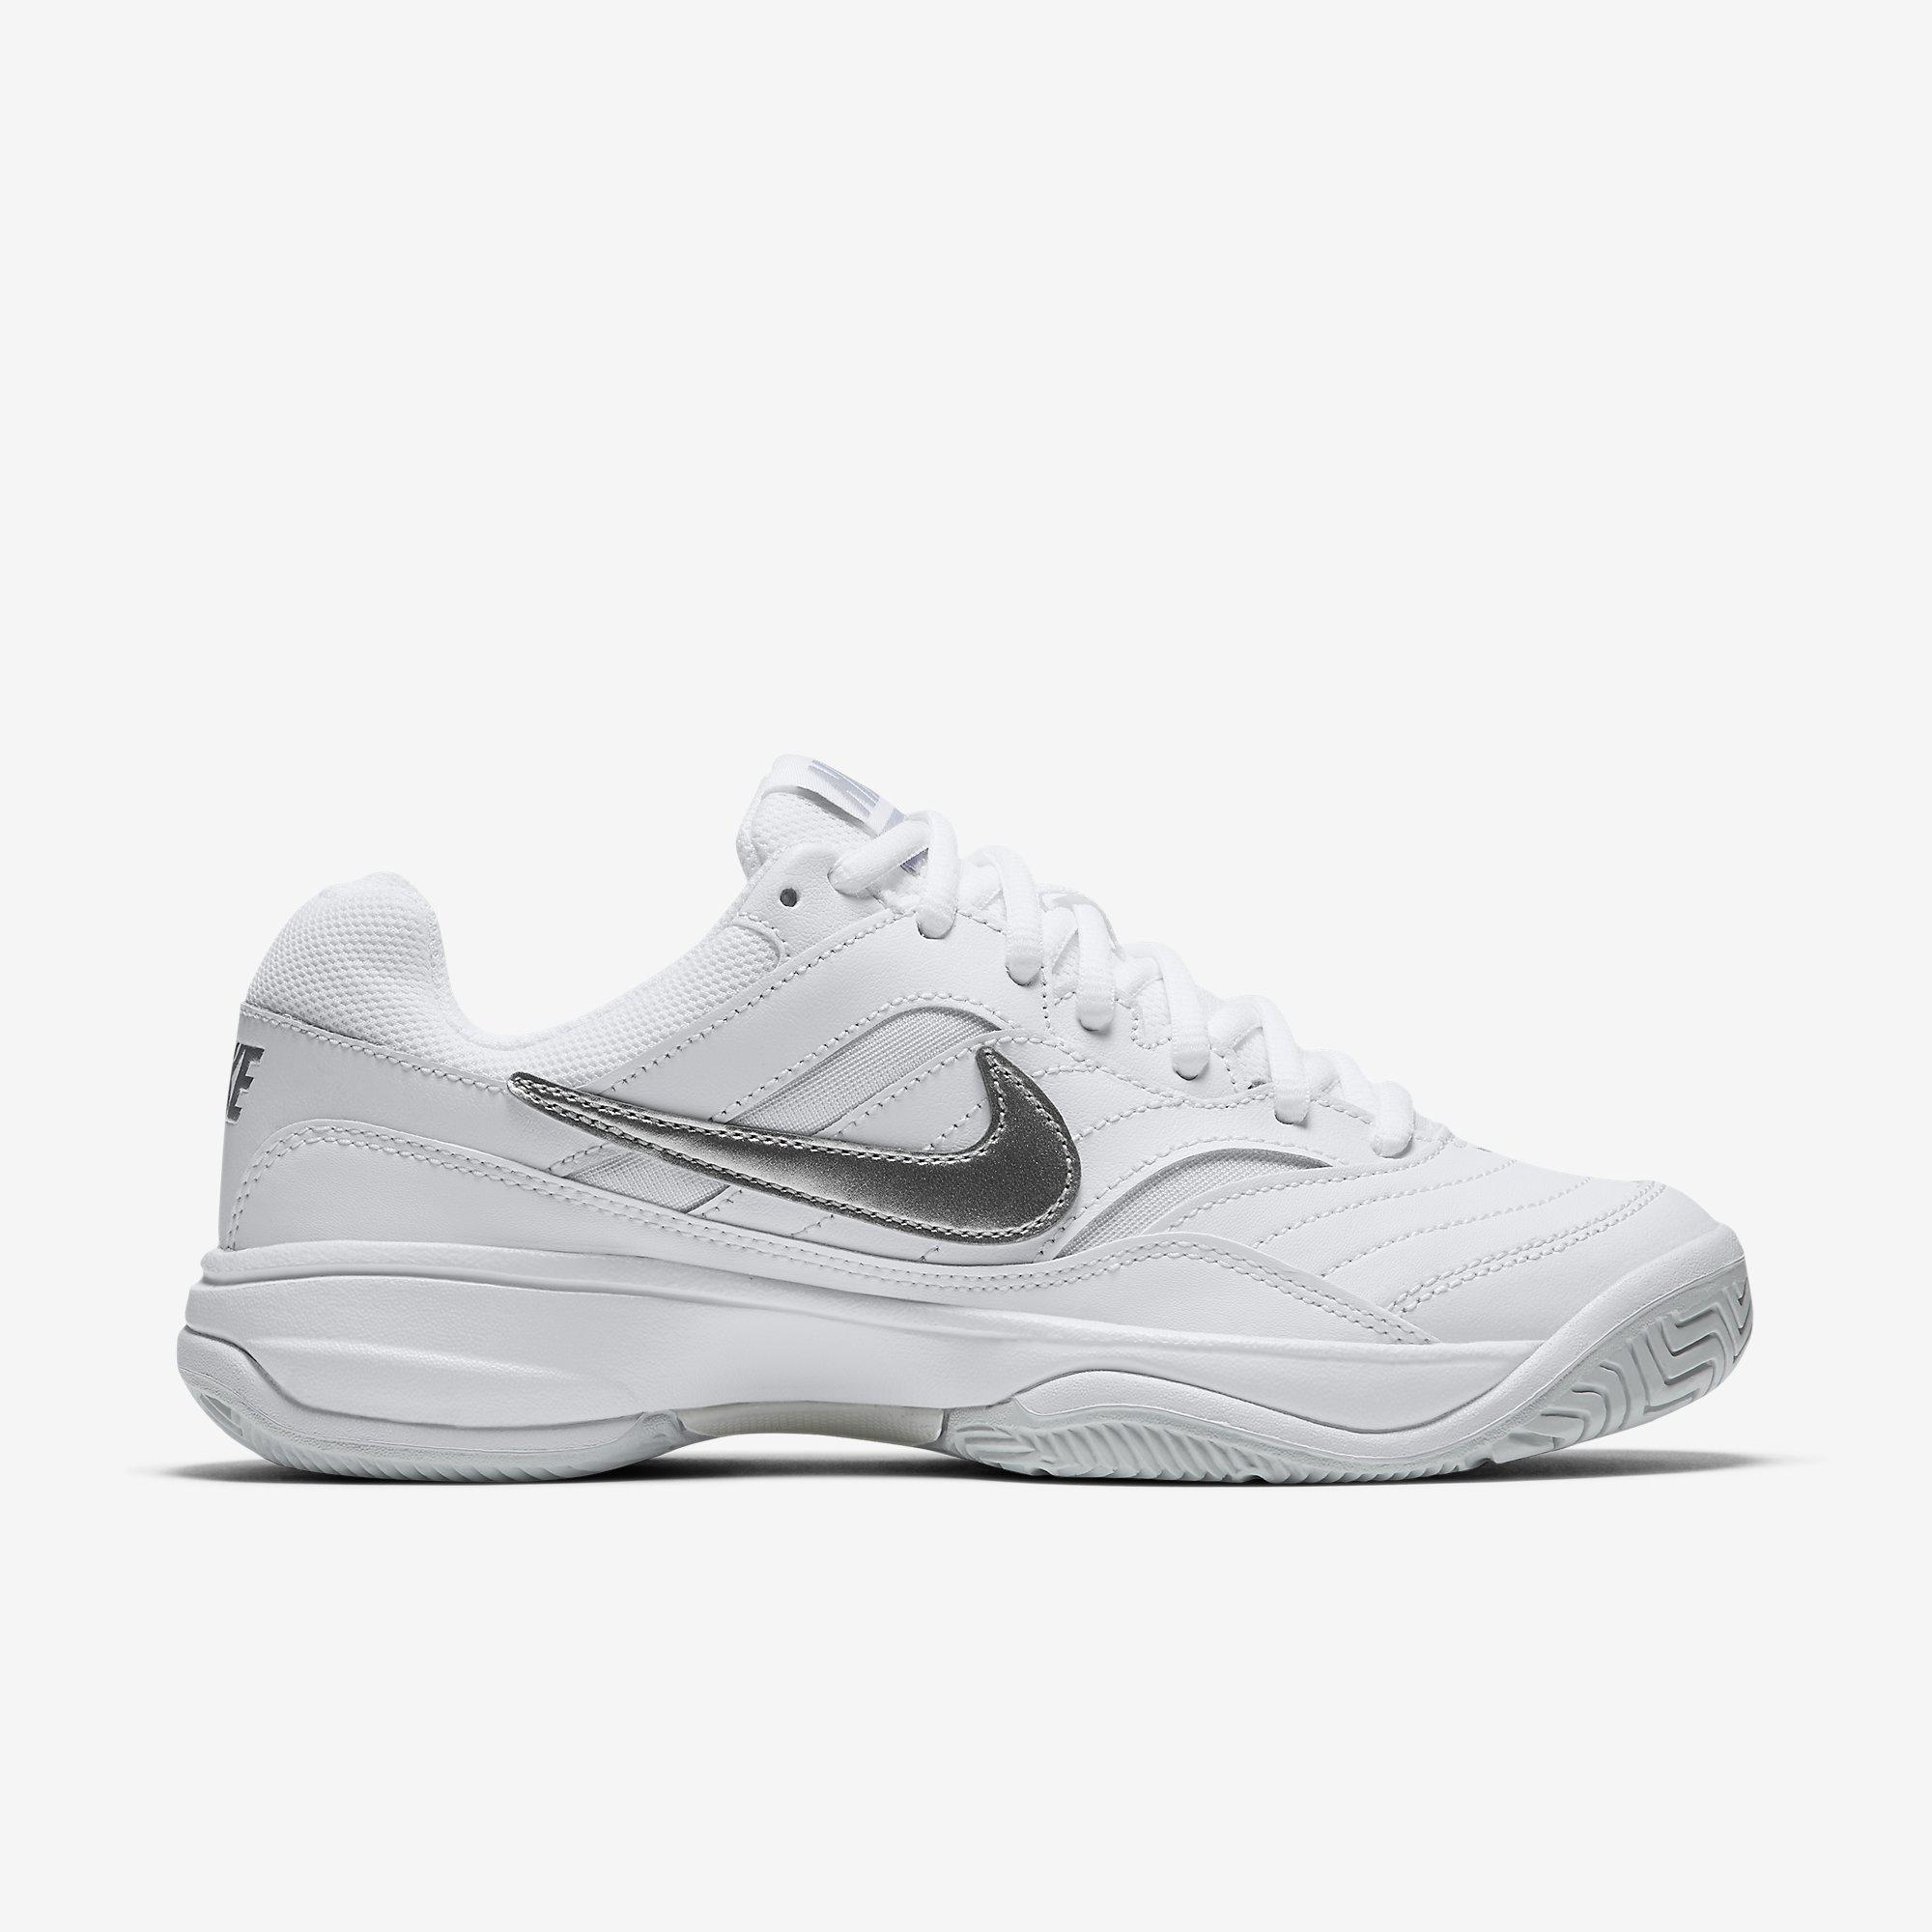 Nike Womens Court Lite Tennis Shoes - White Grey - Tennisnuts.com 60dbec734